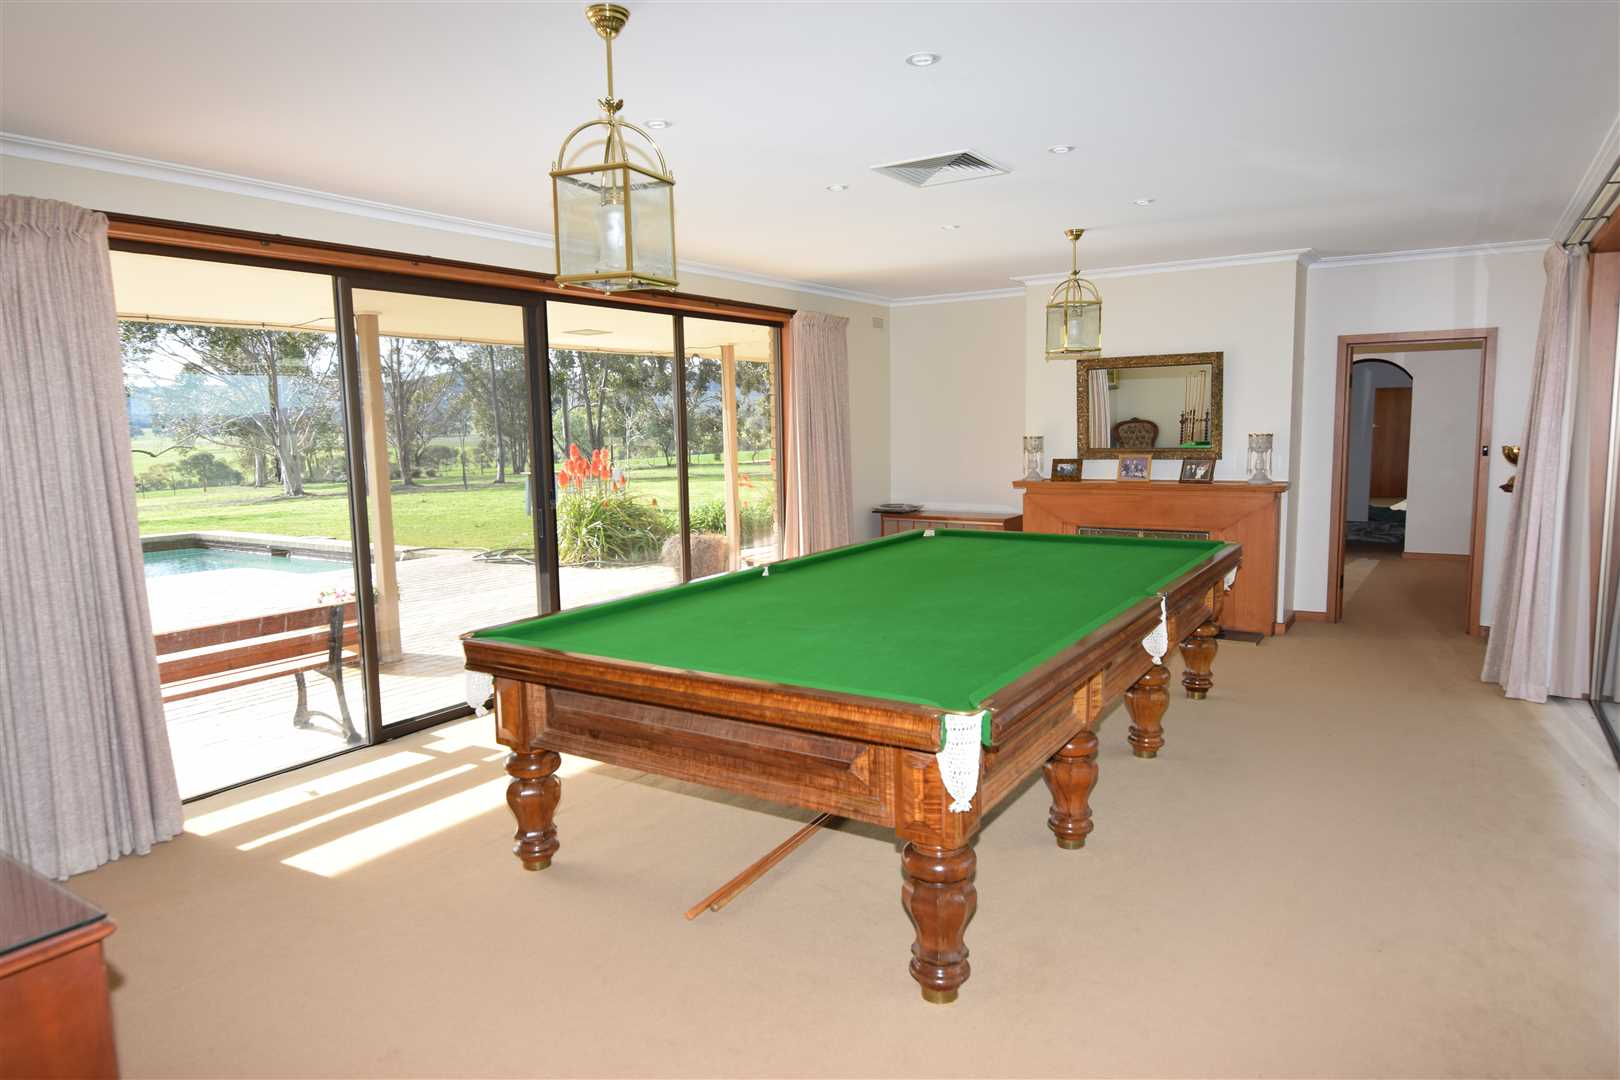 Billiard room to North